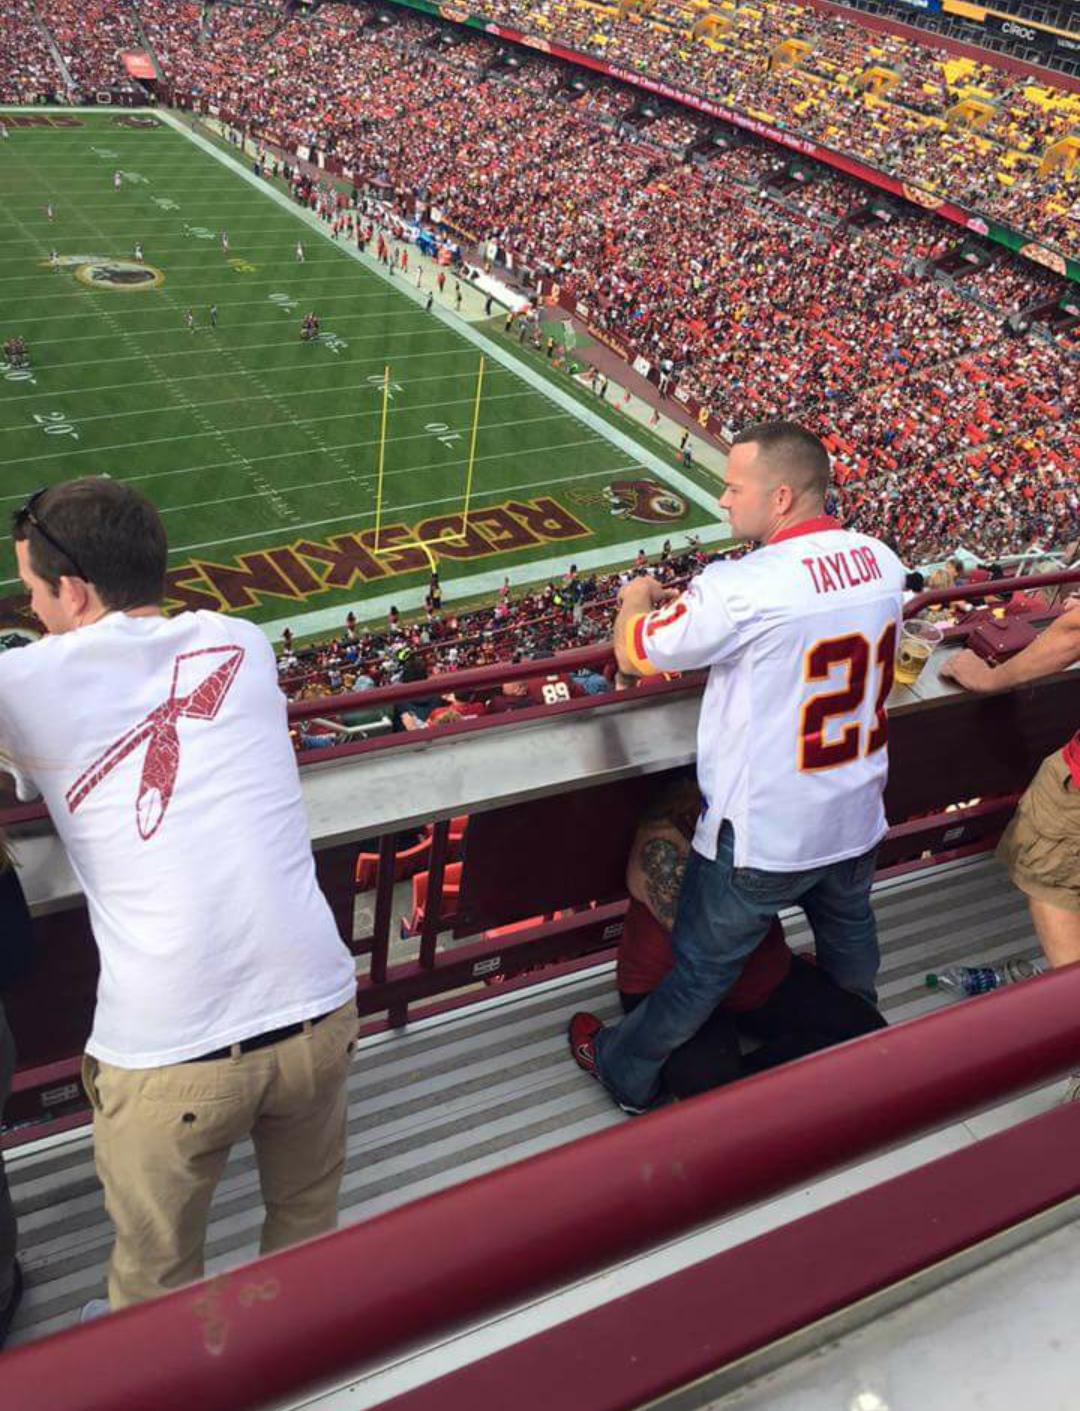 NSFW Photo Of Man (And Wife) At Football Game Goes Viral UNILAD US9t0Db 161462